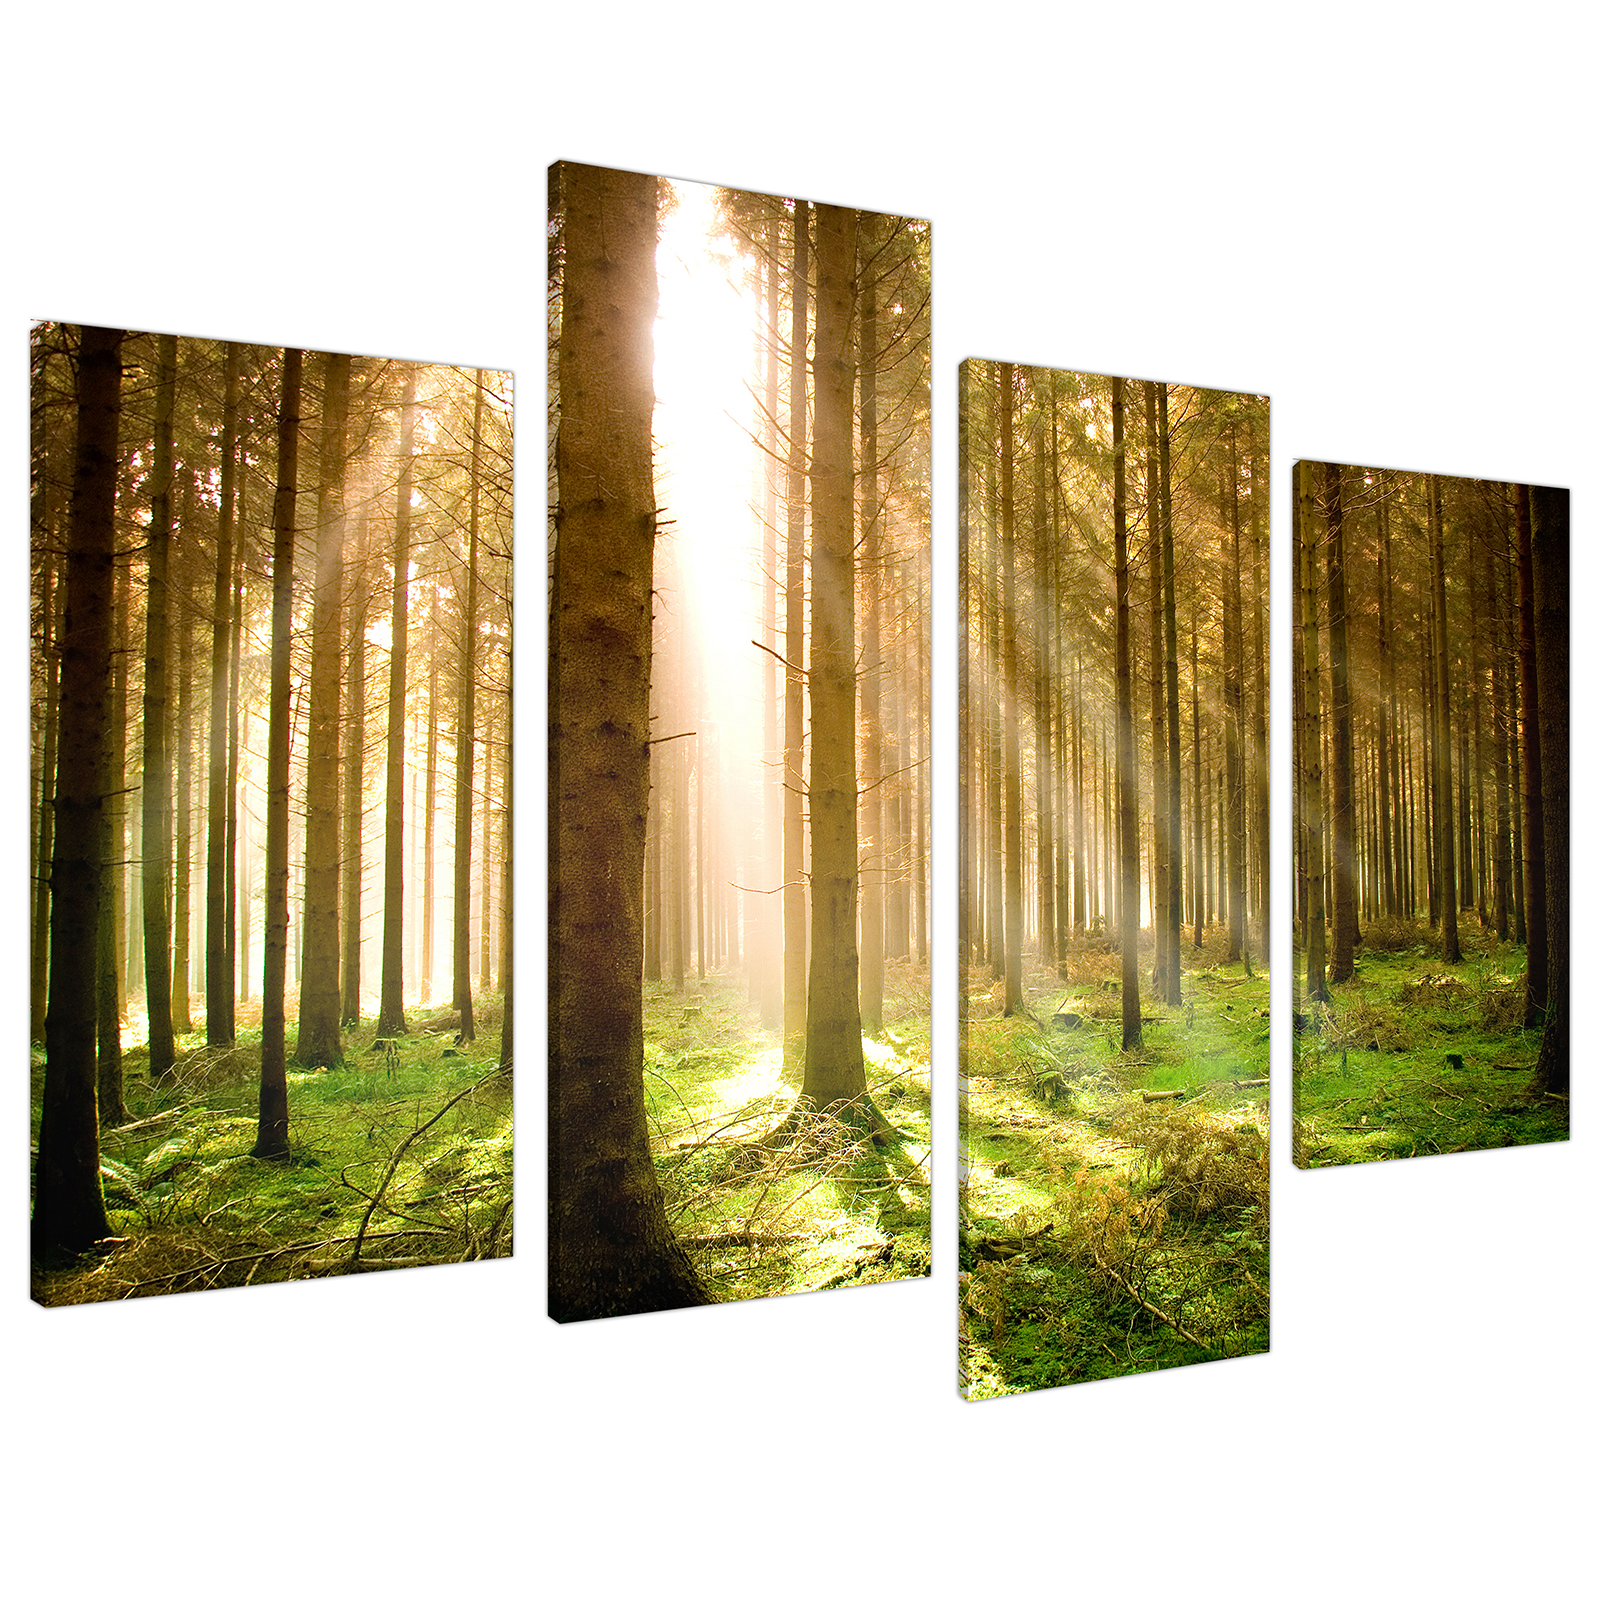 An image of Green Forest Woodland Sunlight Trees Canvas - Multi 4 Panel - 130cm - 4042